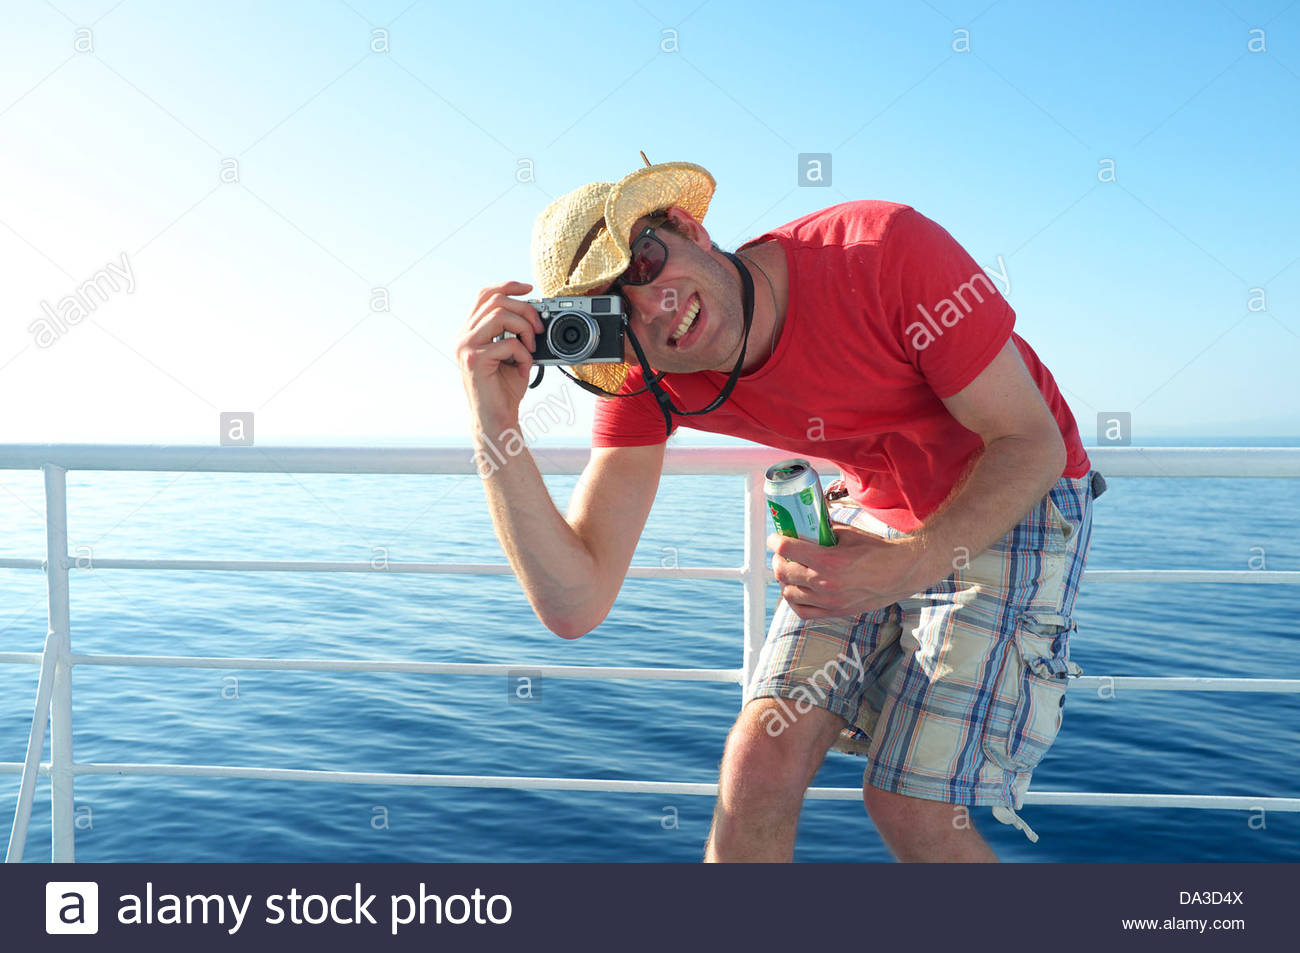 A tall man holding a beer bends over to take a photograph, during a summer ferry crossing in Greece. - Stock Image